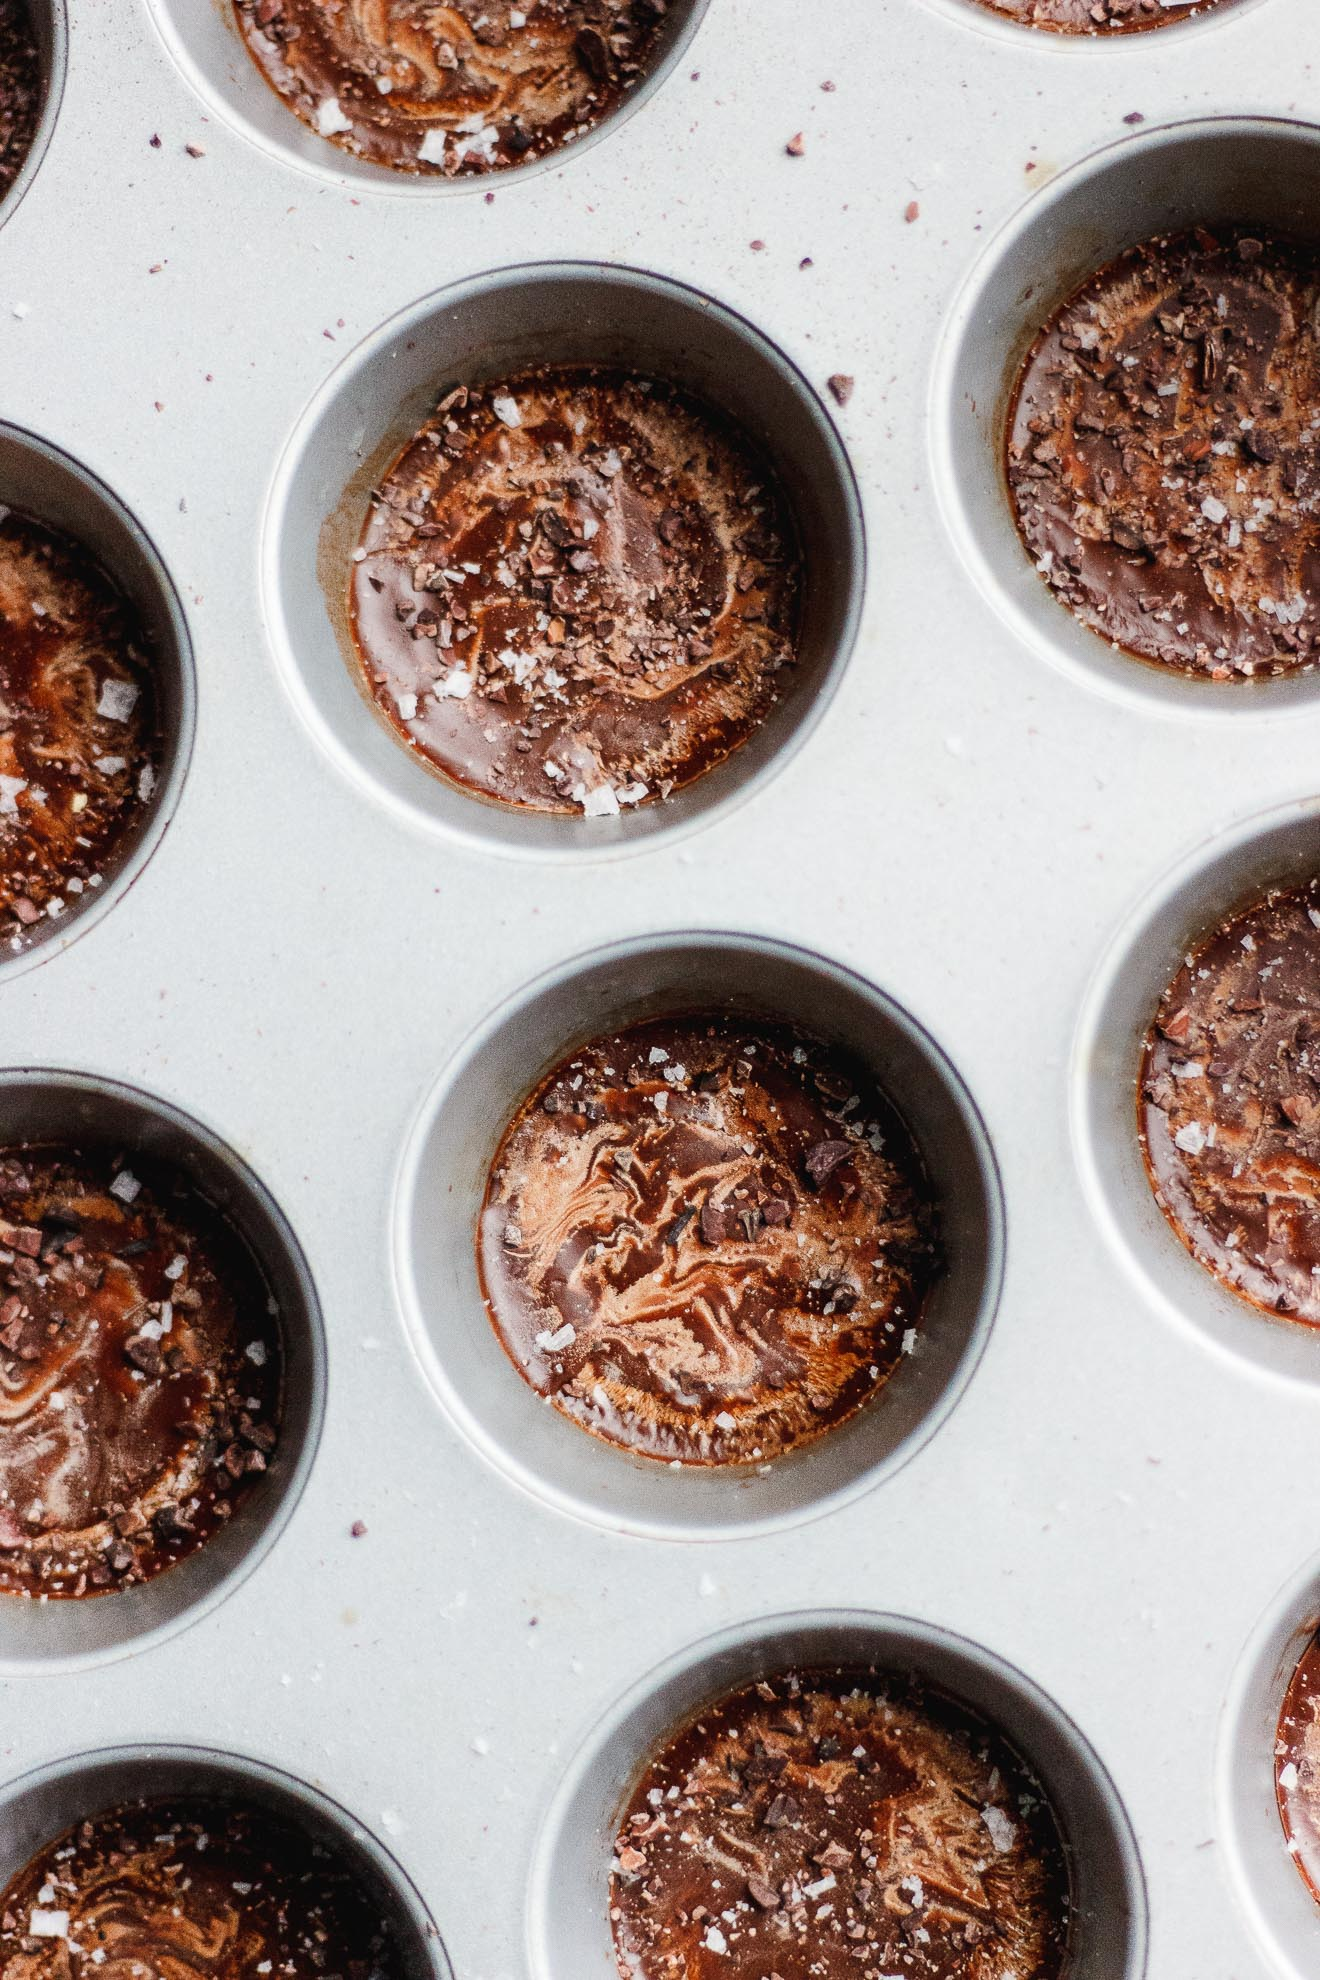 Keto Coconut Oil Fat Bombs with Cacao Nibs + Flake Salt | #ketorecipes #fatbombs #healthyfat